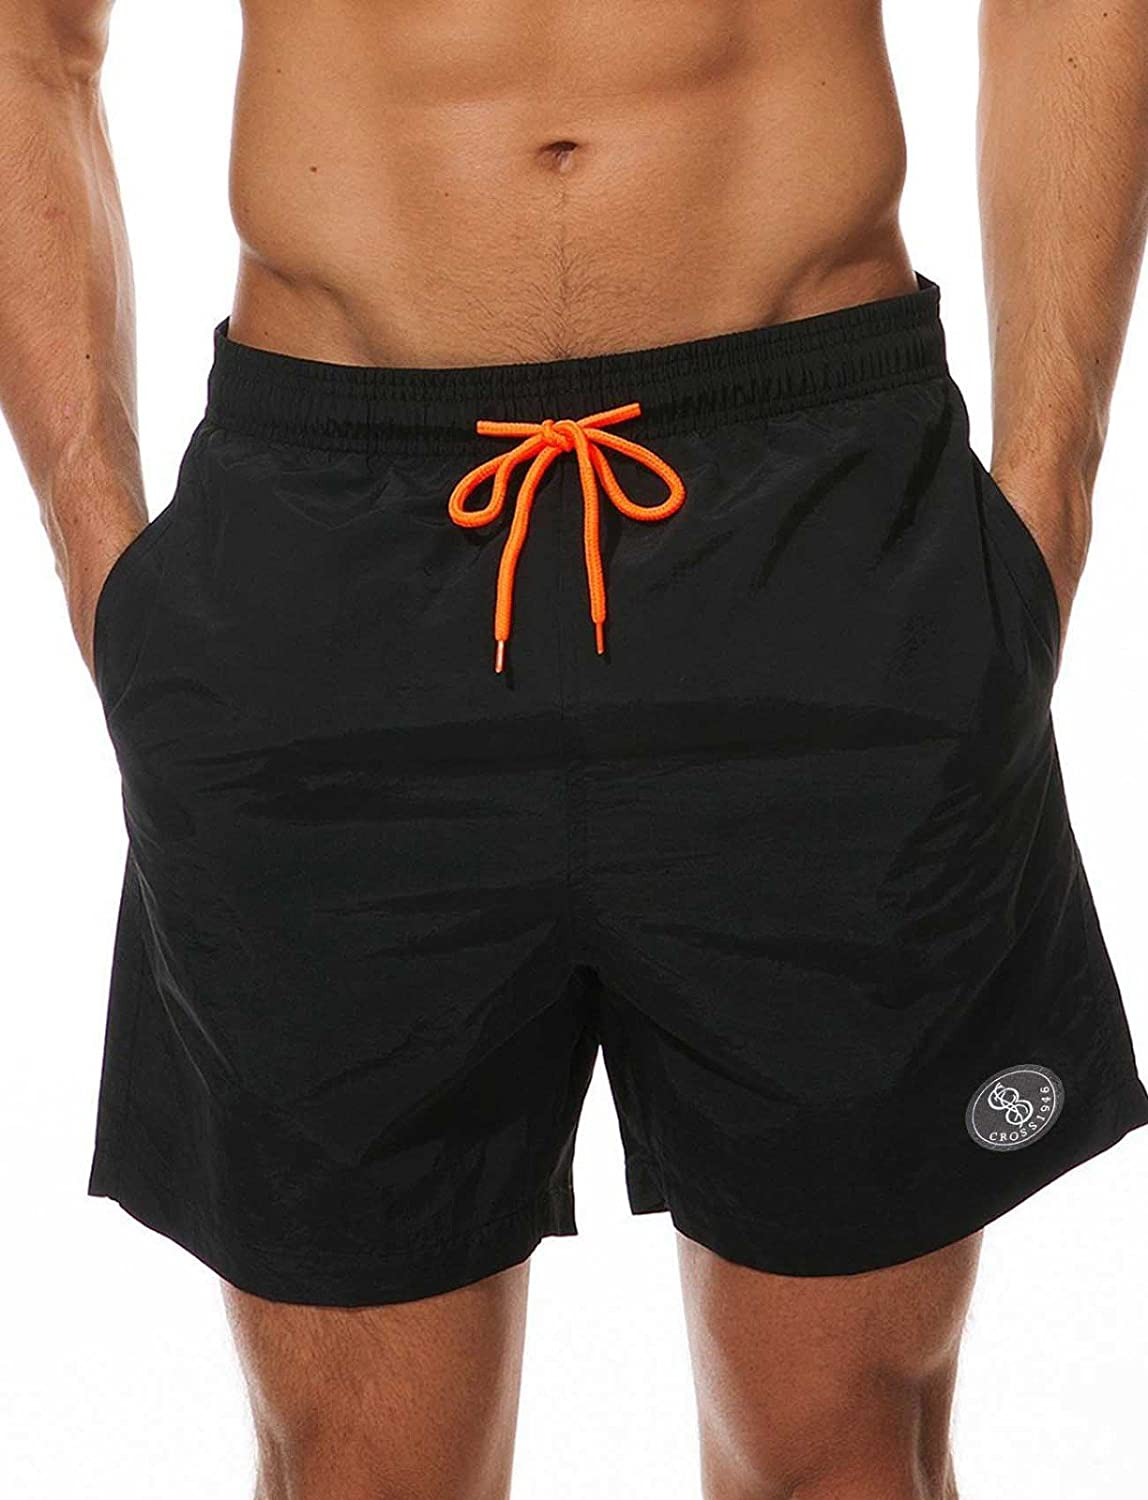 846ec08de4 GREAT QUALITY: This swim trunk Features an elastic waist band, drawstring,  mesh lining, two side pockets and one back pocket.